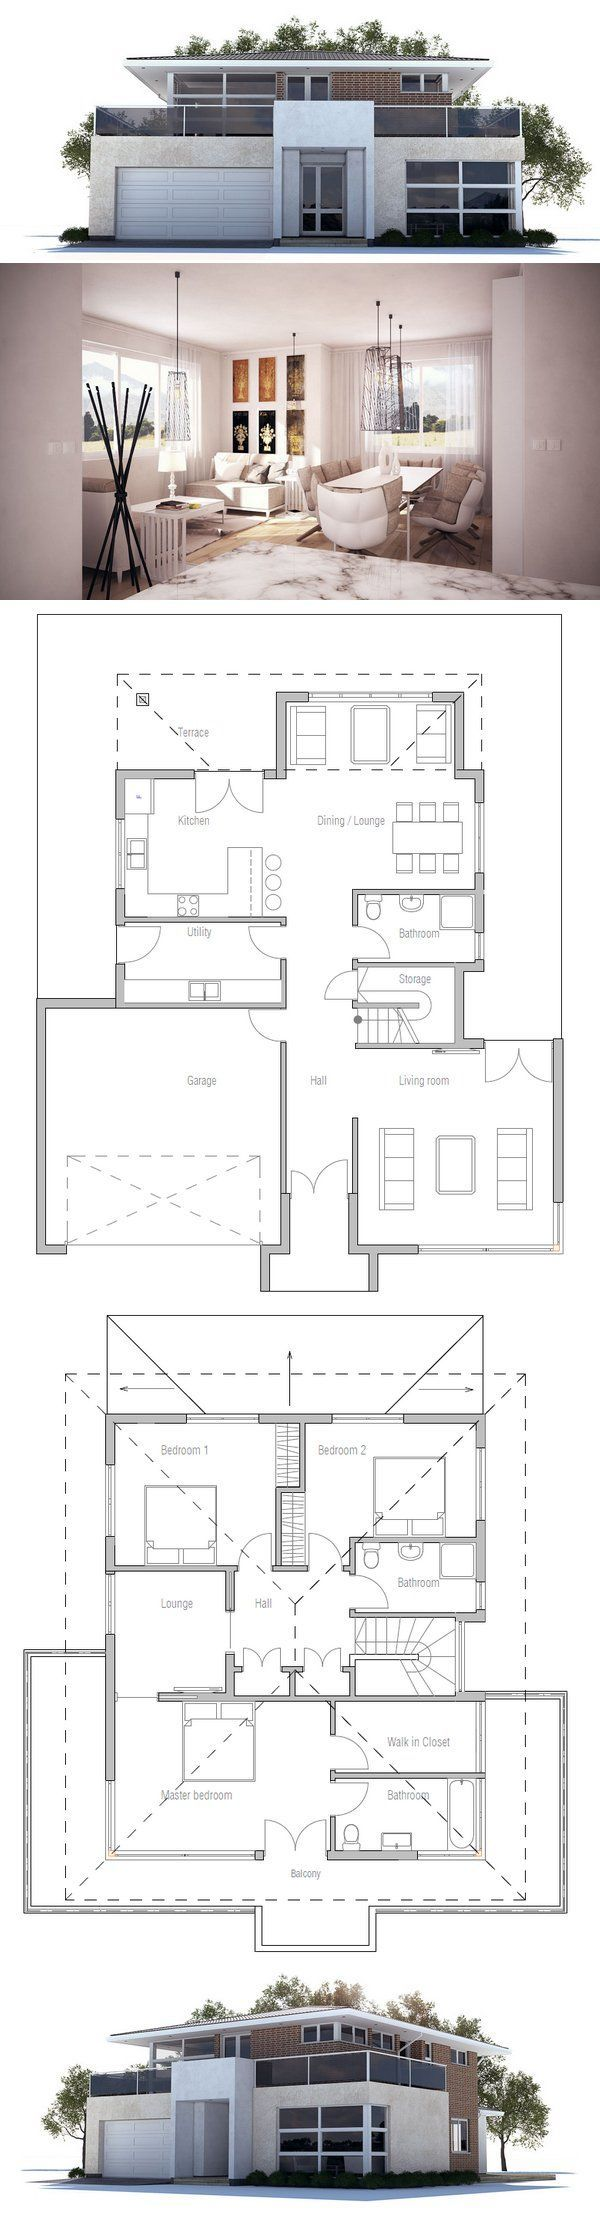 Architecture House Floor Plans 336 best house design & floor plan images on pinterest | house